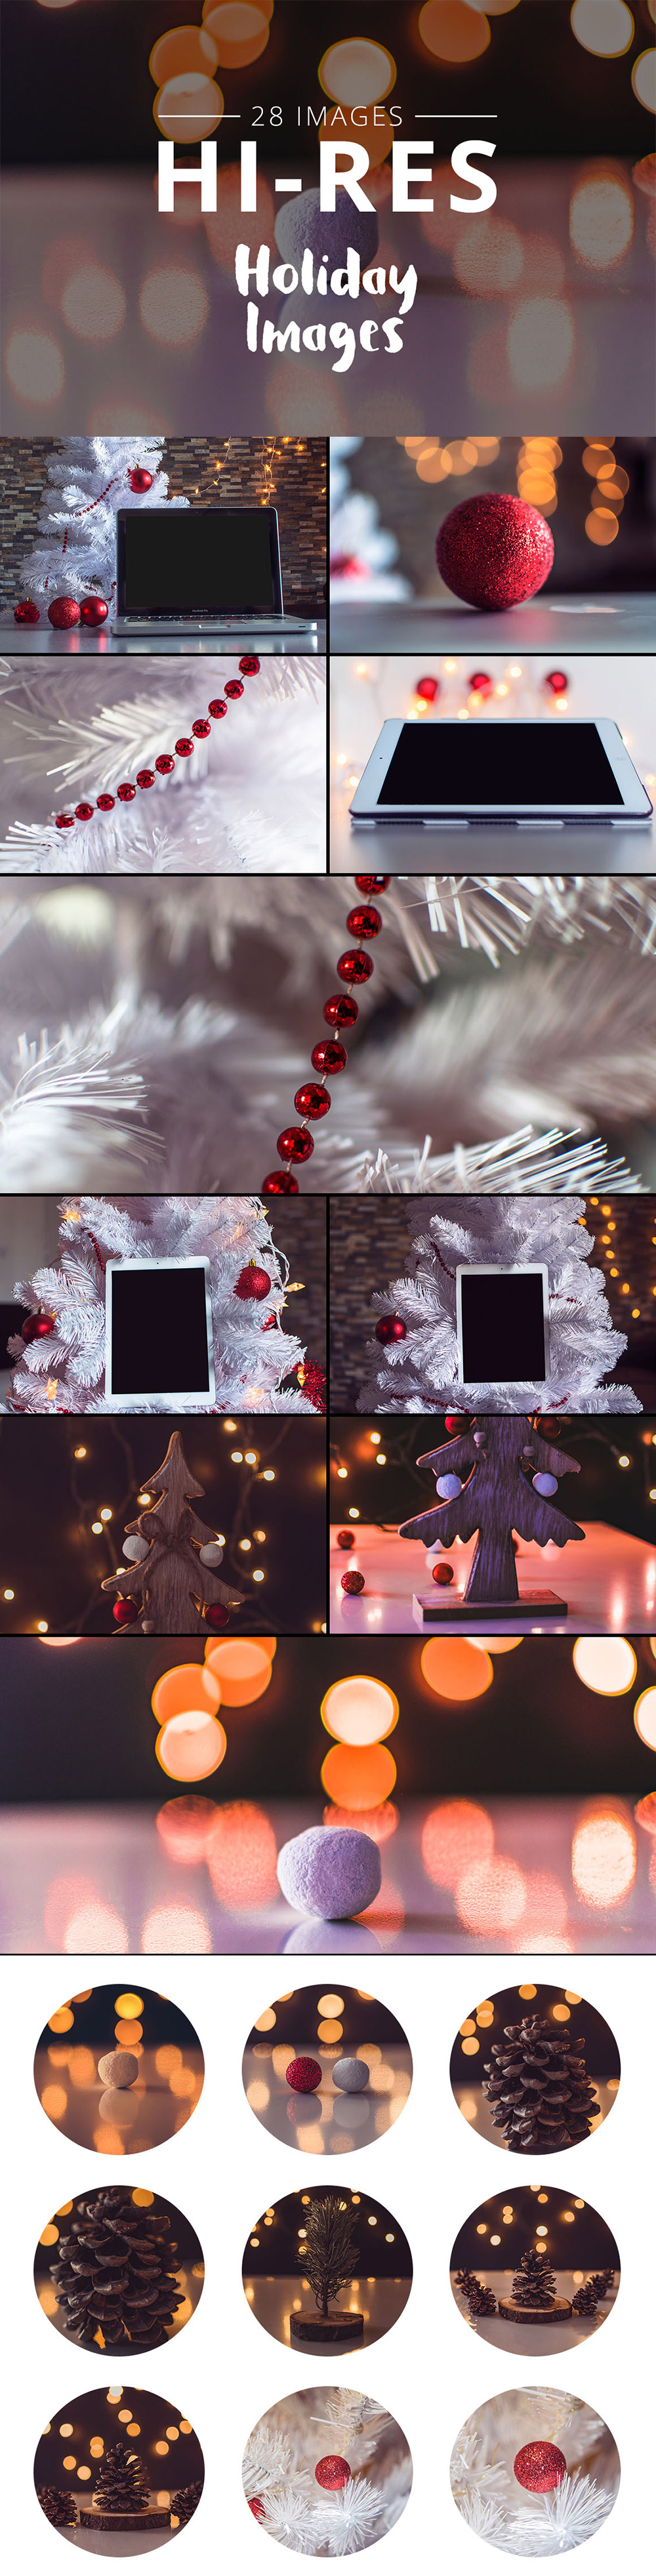 Photos Bundle Holidays